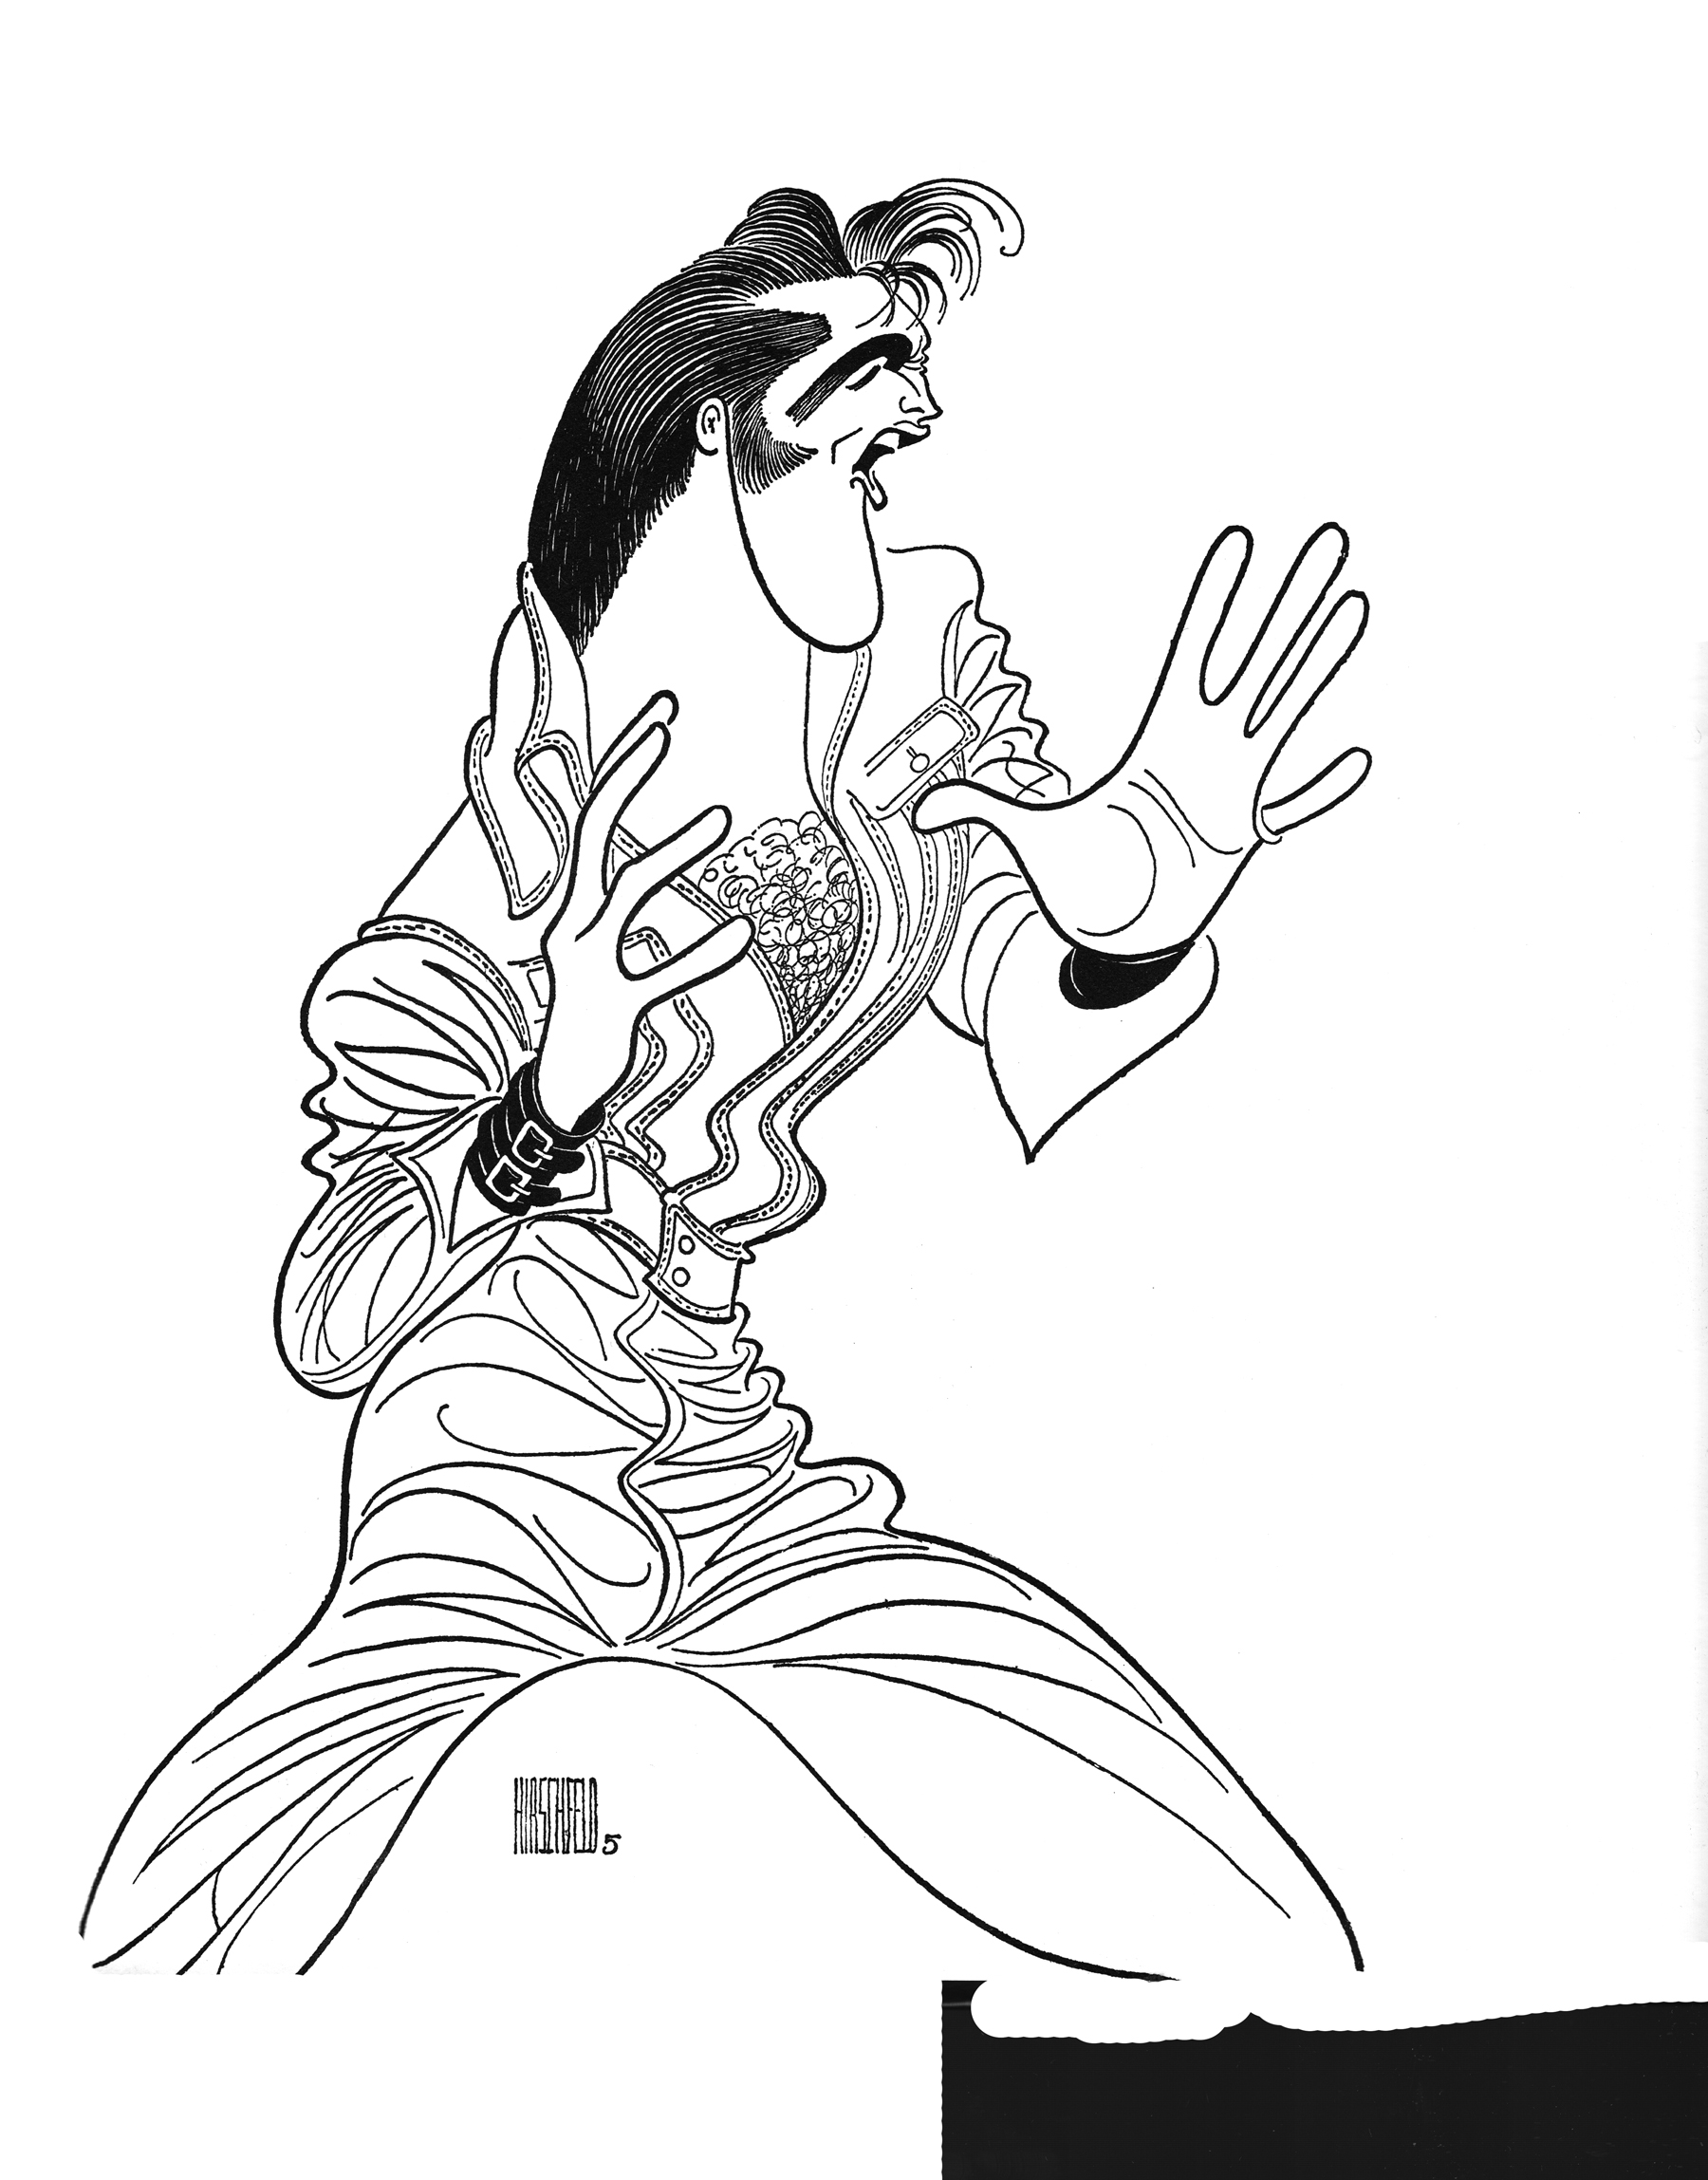 Elvis Presley Drawing at GetDrawings.com | Free for personal use ...